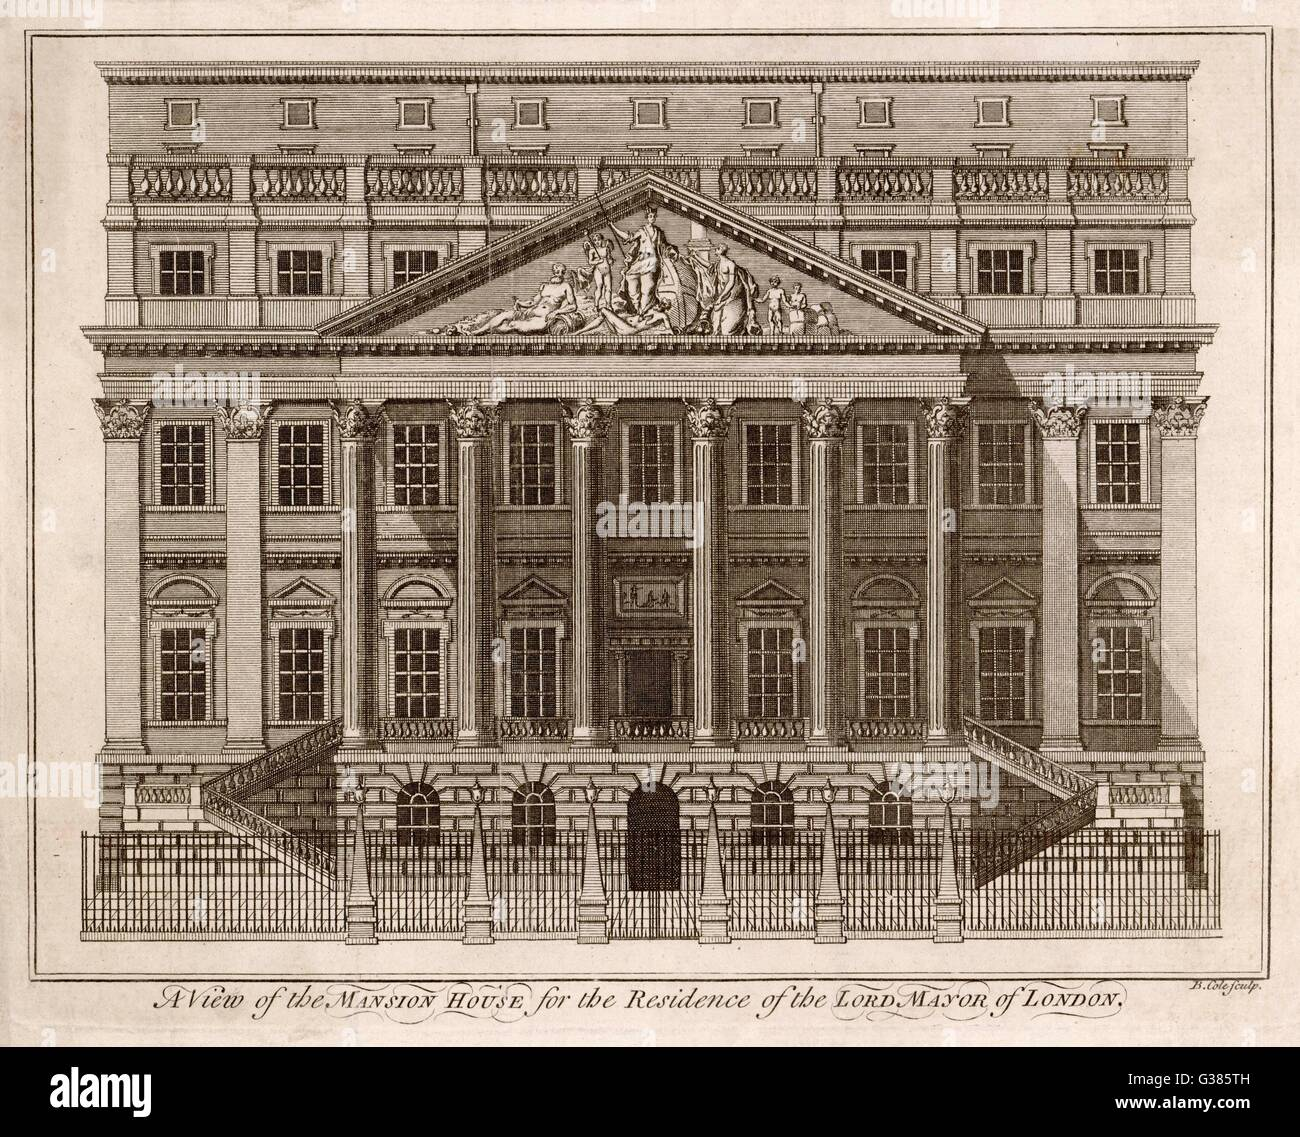 Mansion House, the residence  of the Lord Mayor of London.         Date: 1750 Stock Photo